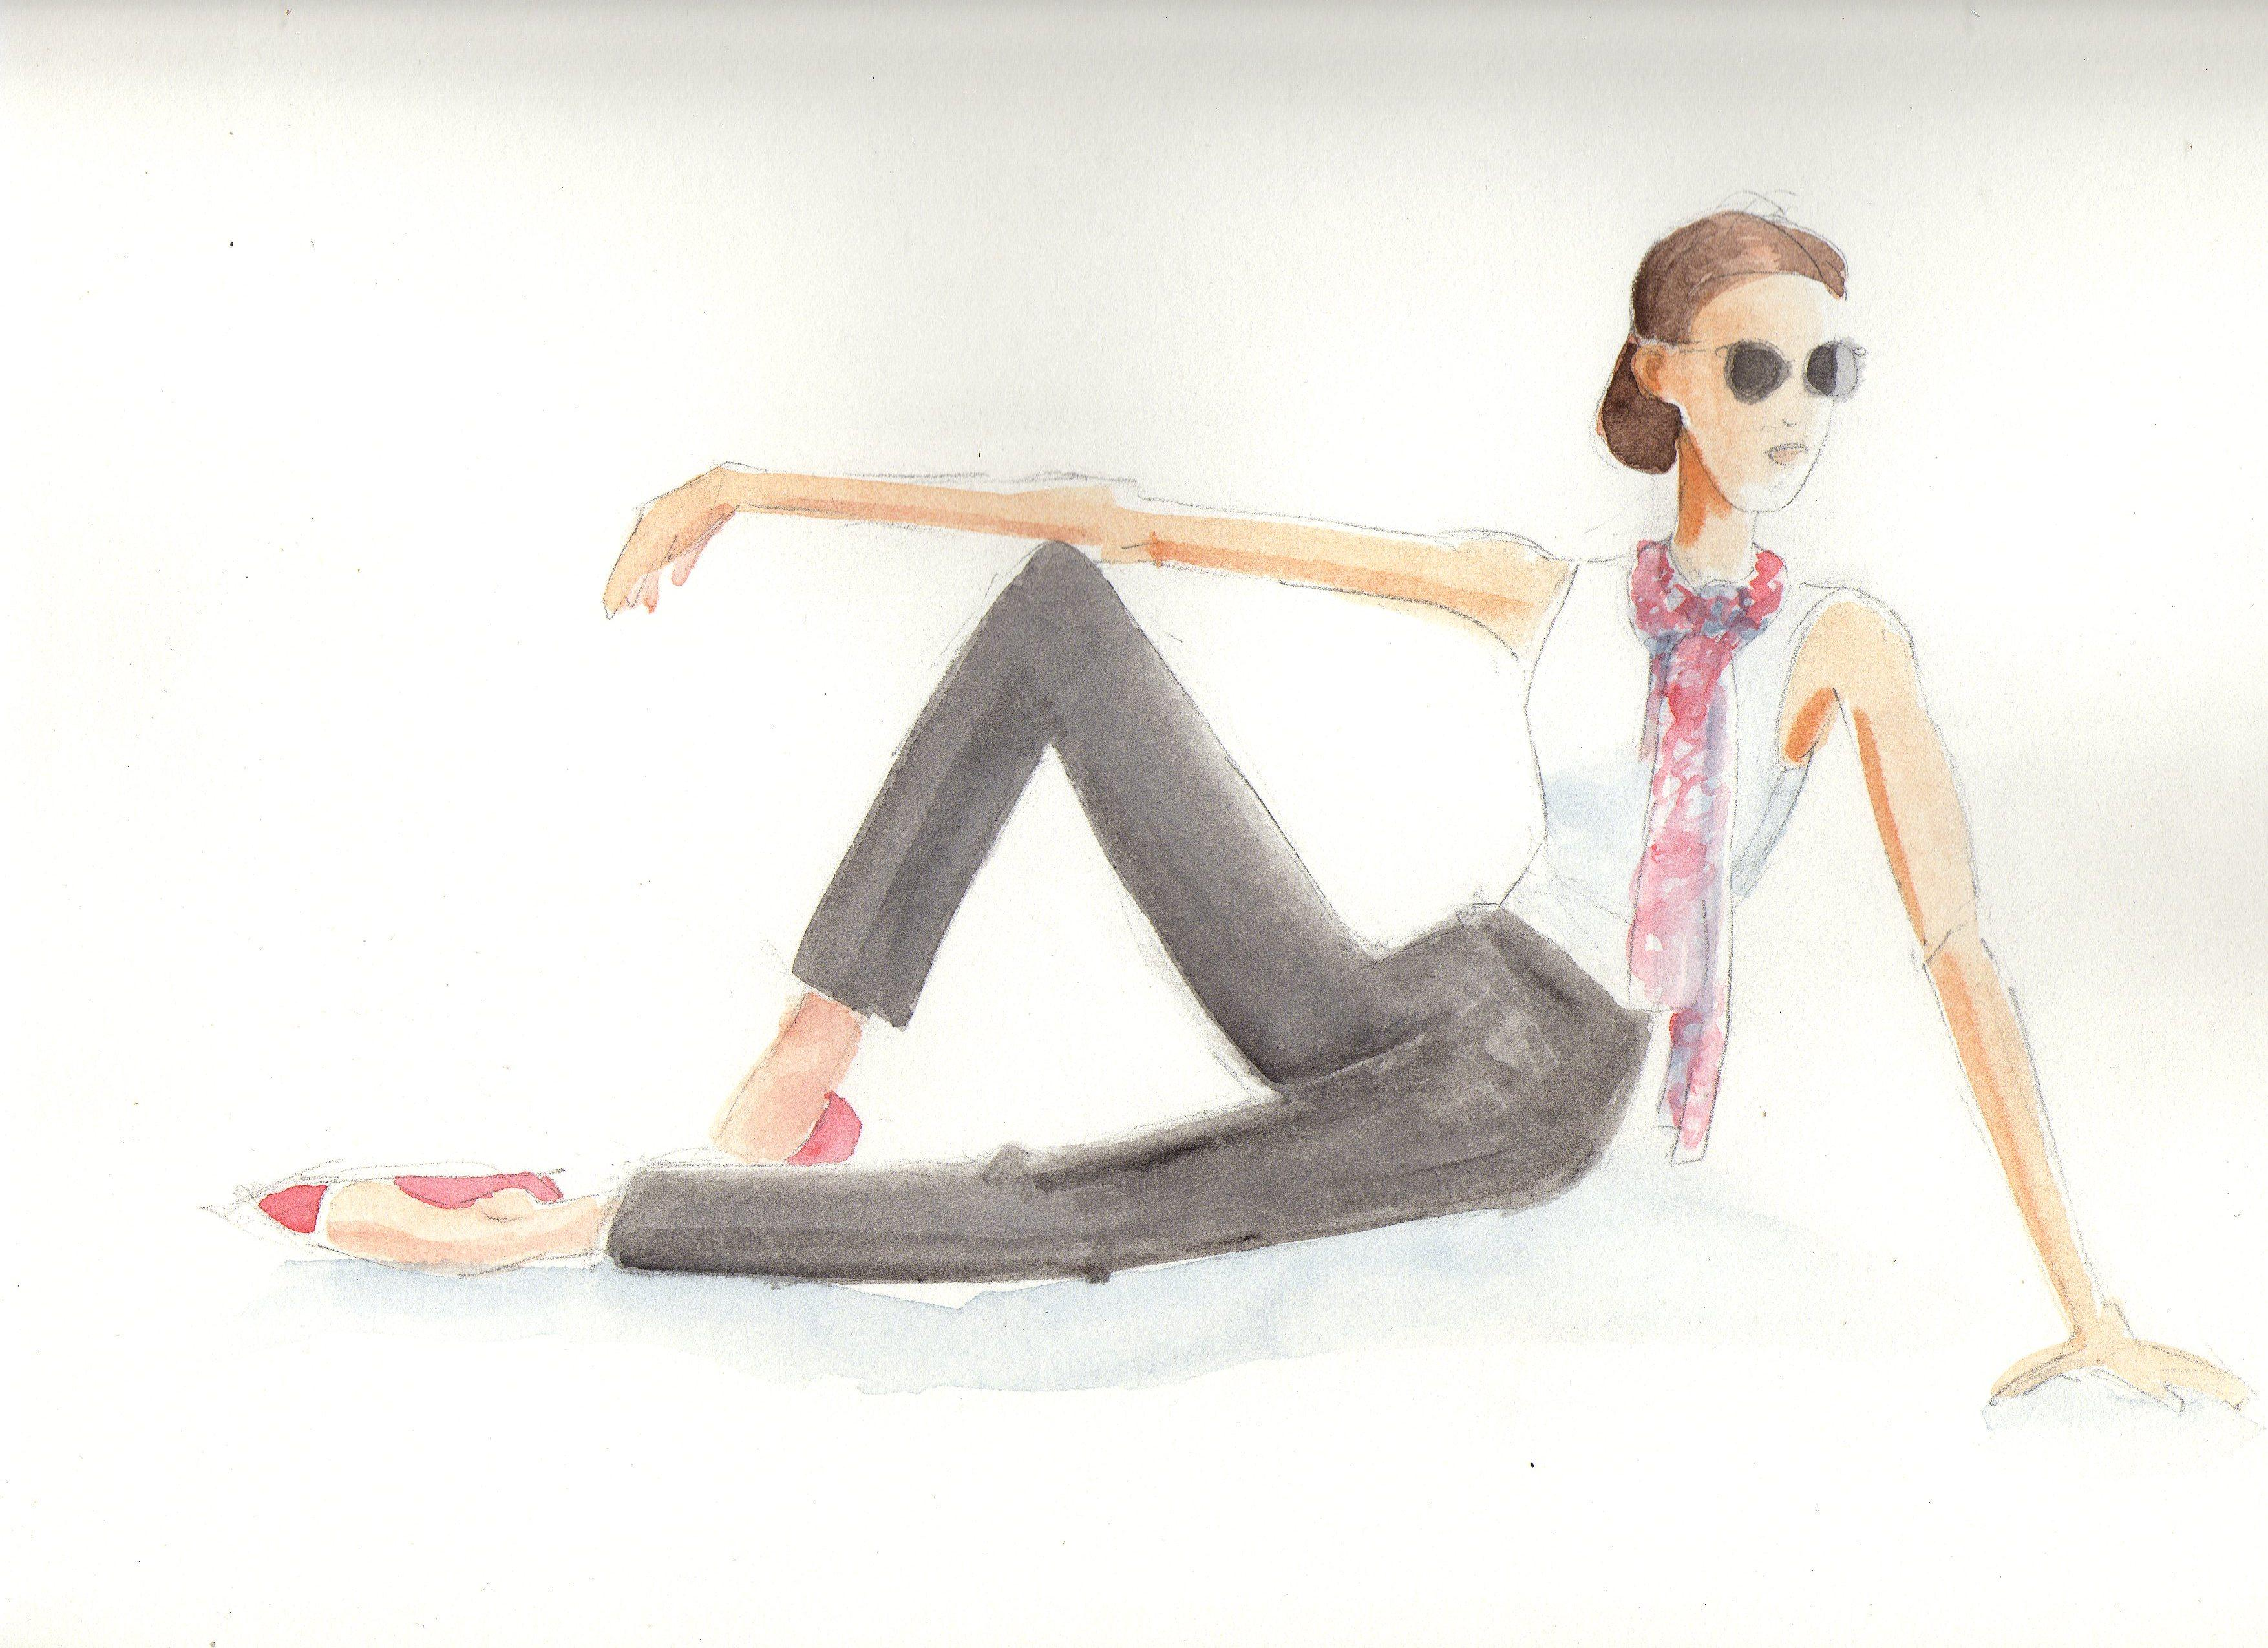 Fun with Watercolor Fashion Mashup - image 2 - student project